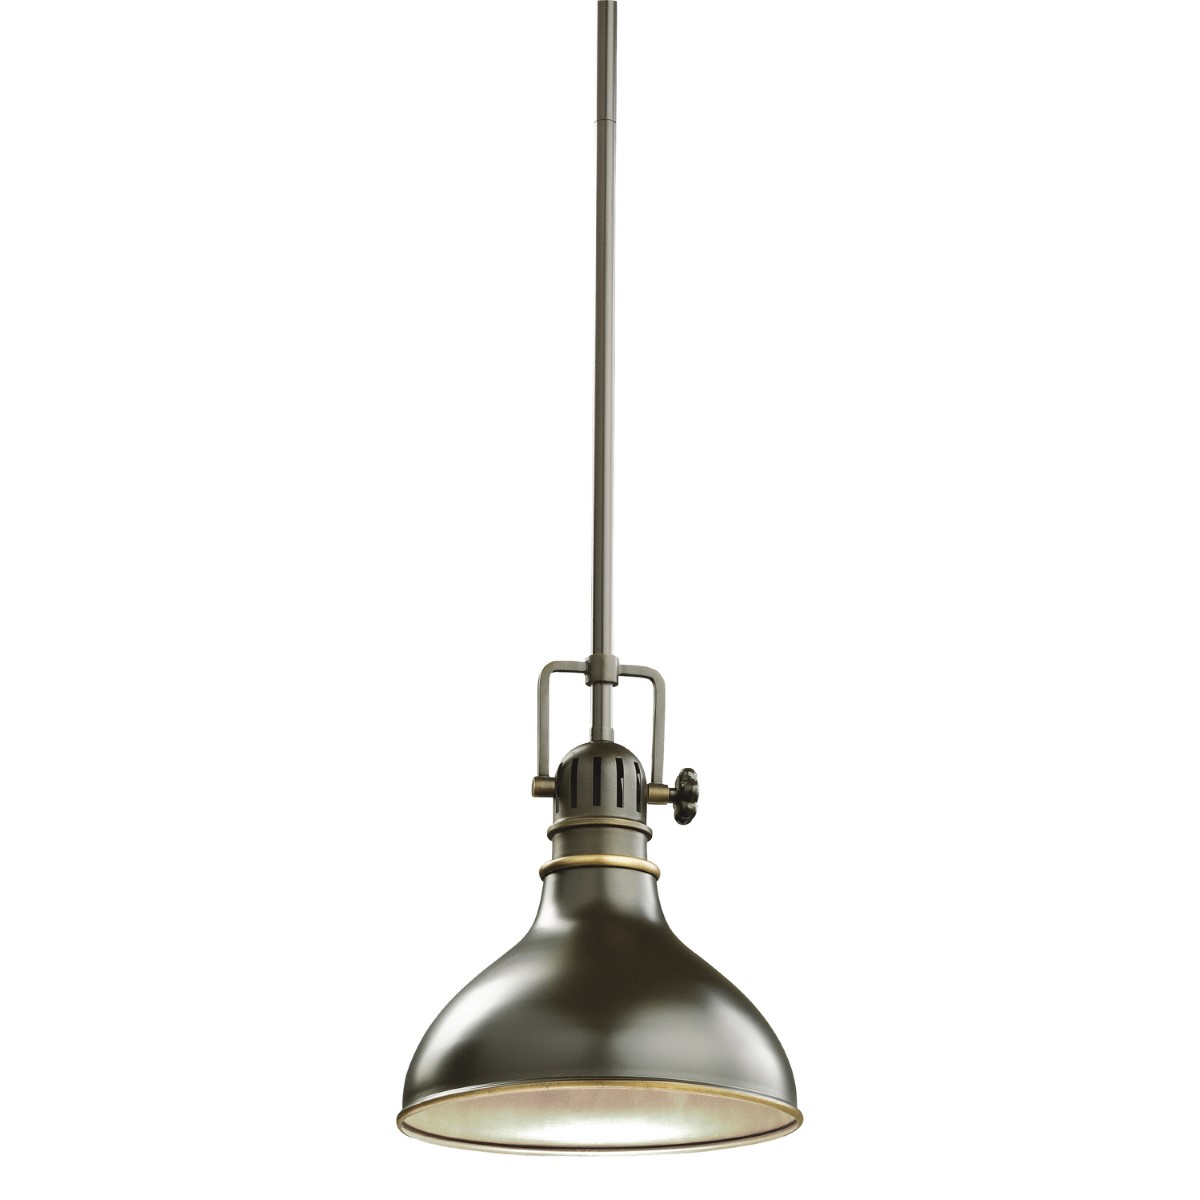 Kichler Hatteras Bay Hatteras Bay Pendant Light with Silver / Gray Steel Shade - Olde Bronze (2664OZ)